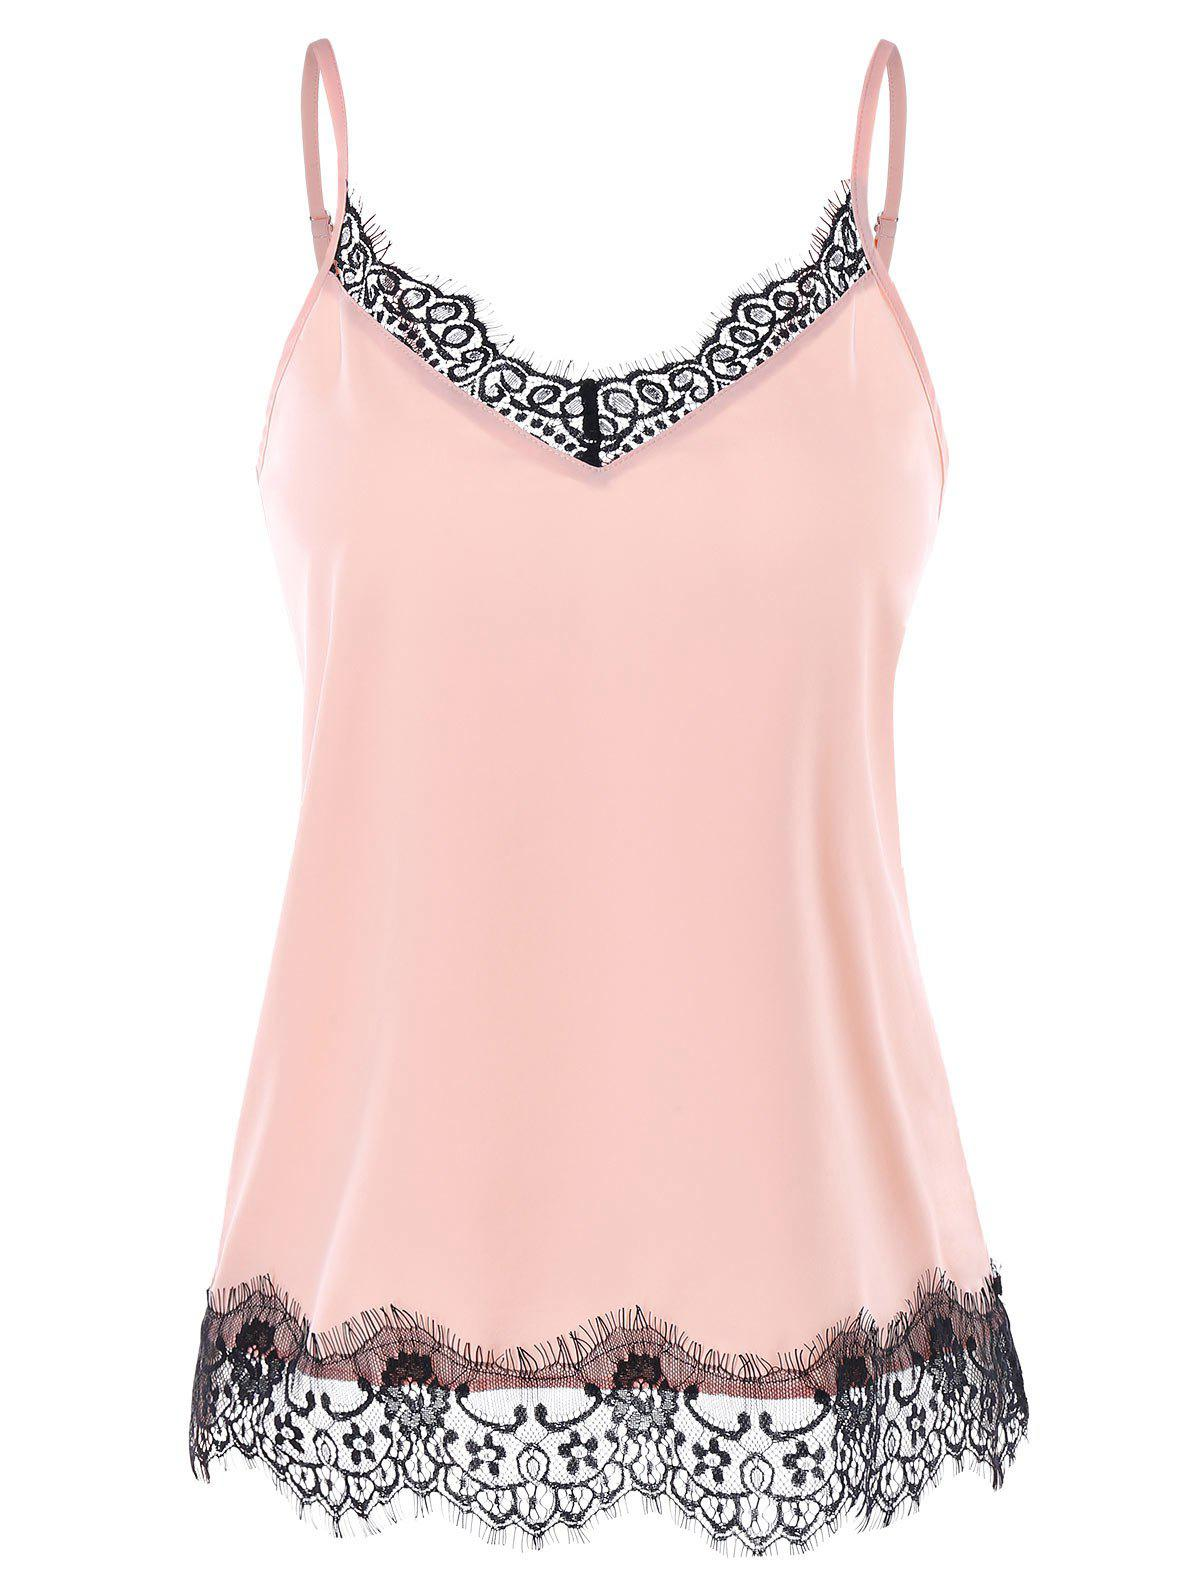 Lace Panel Cami Strap Top - LIGHT PINK XL